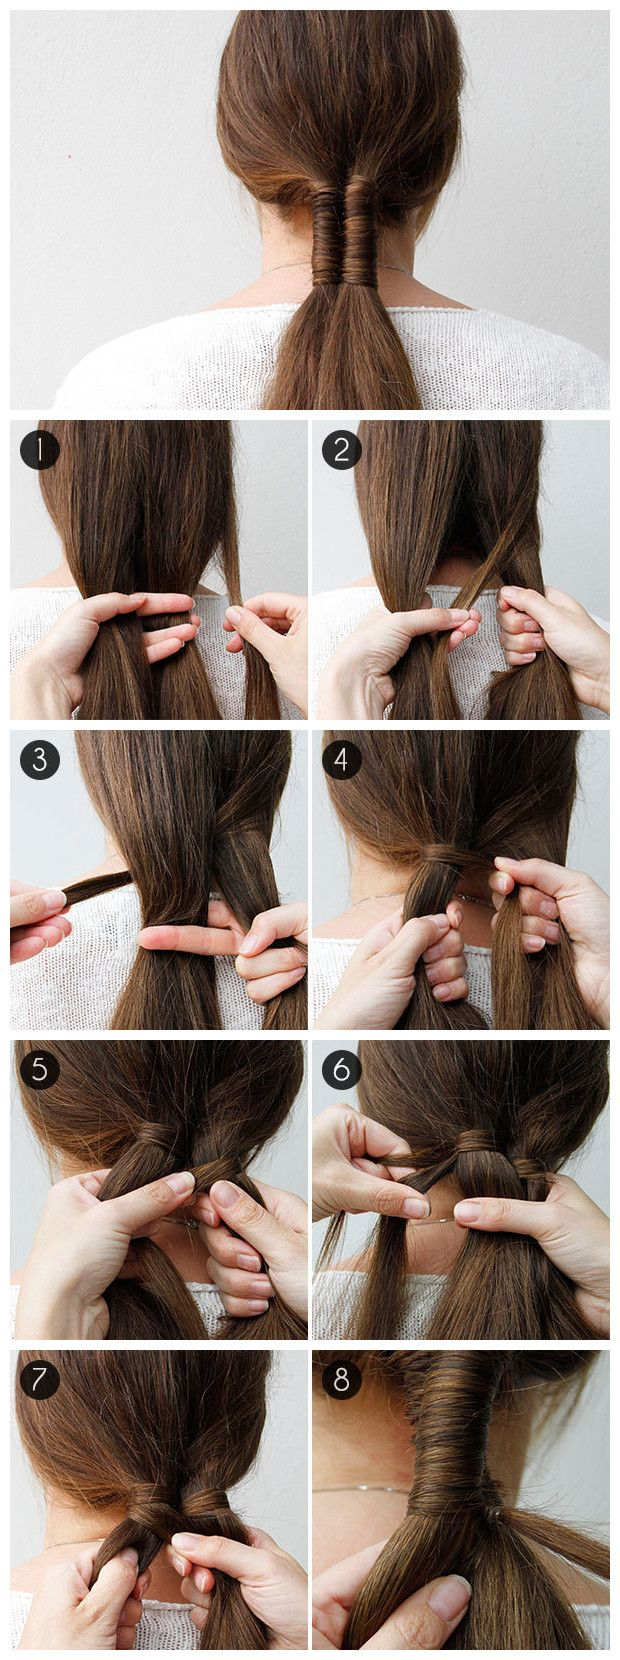 Add a personal twist to the low ponytail trend with an infinity braid